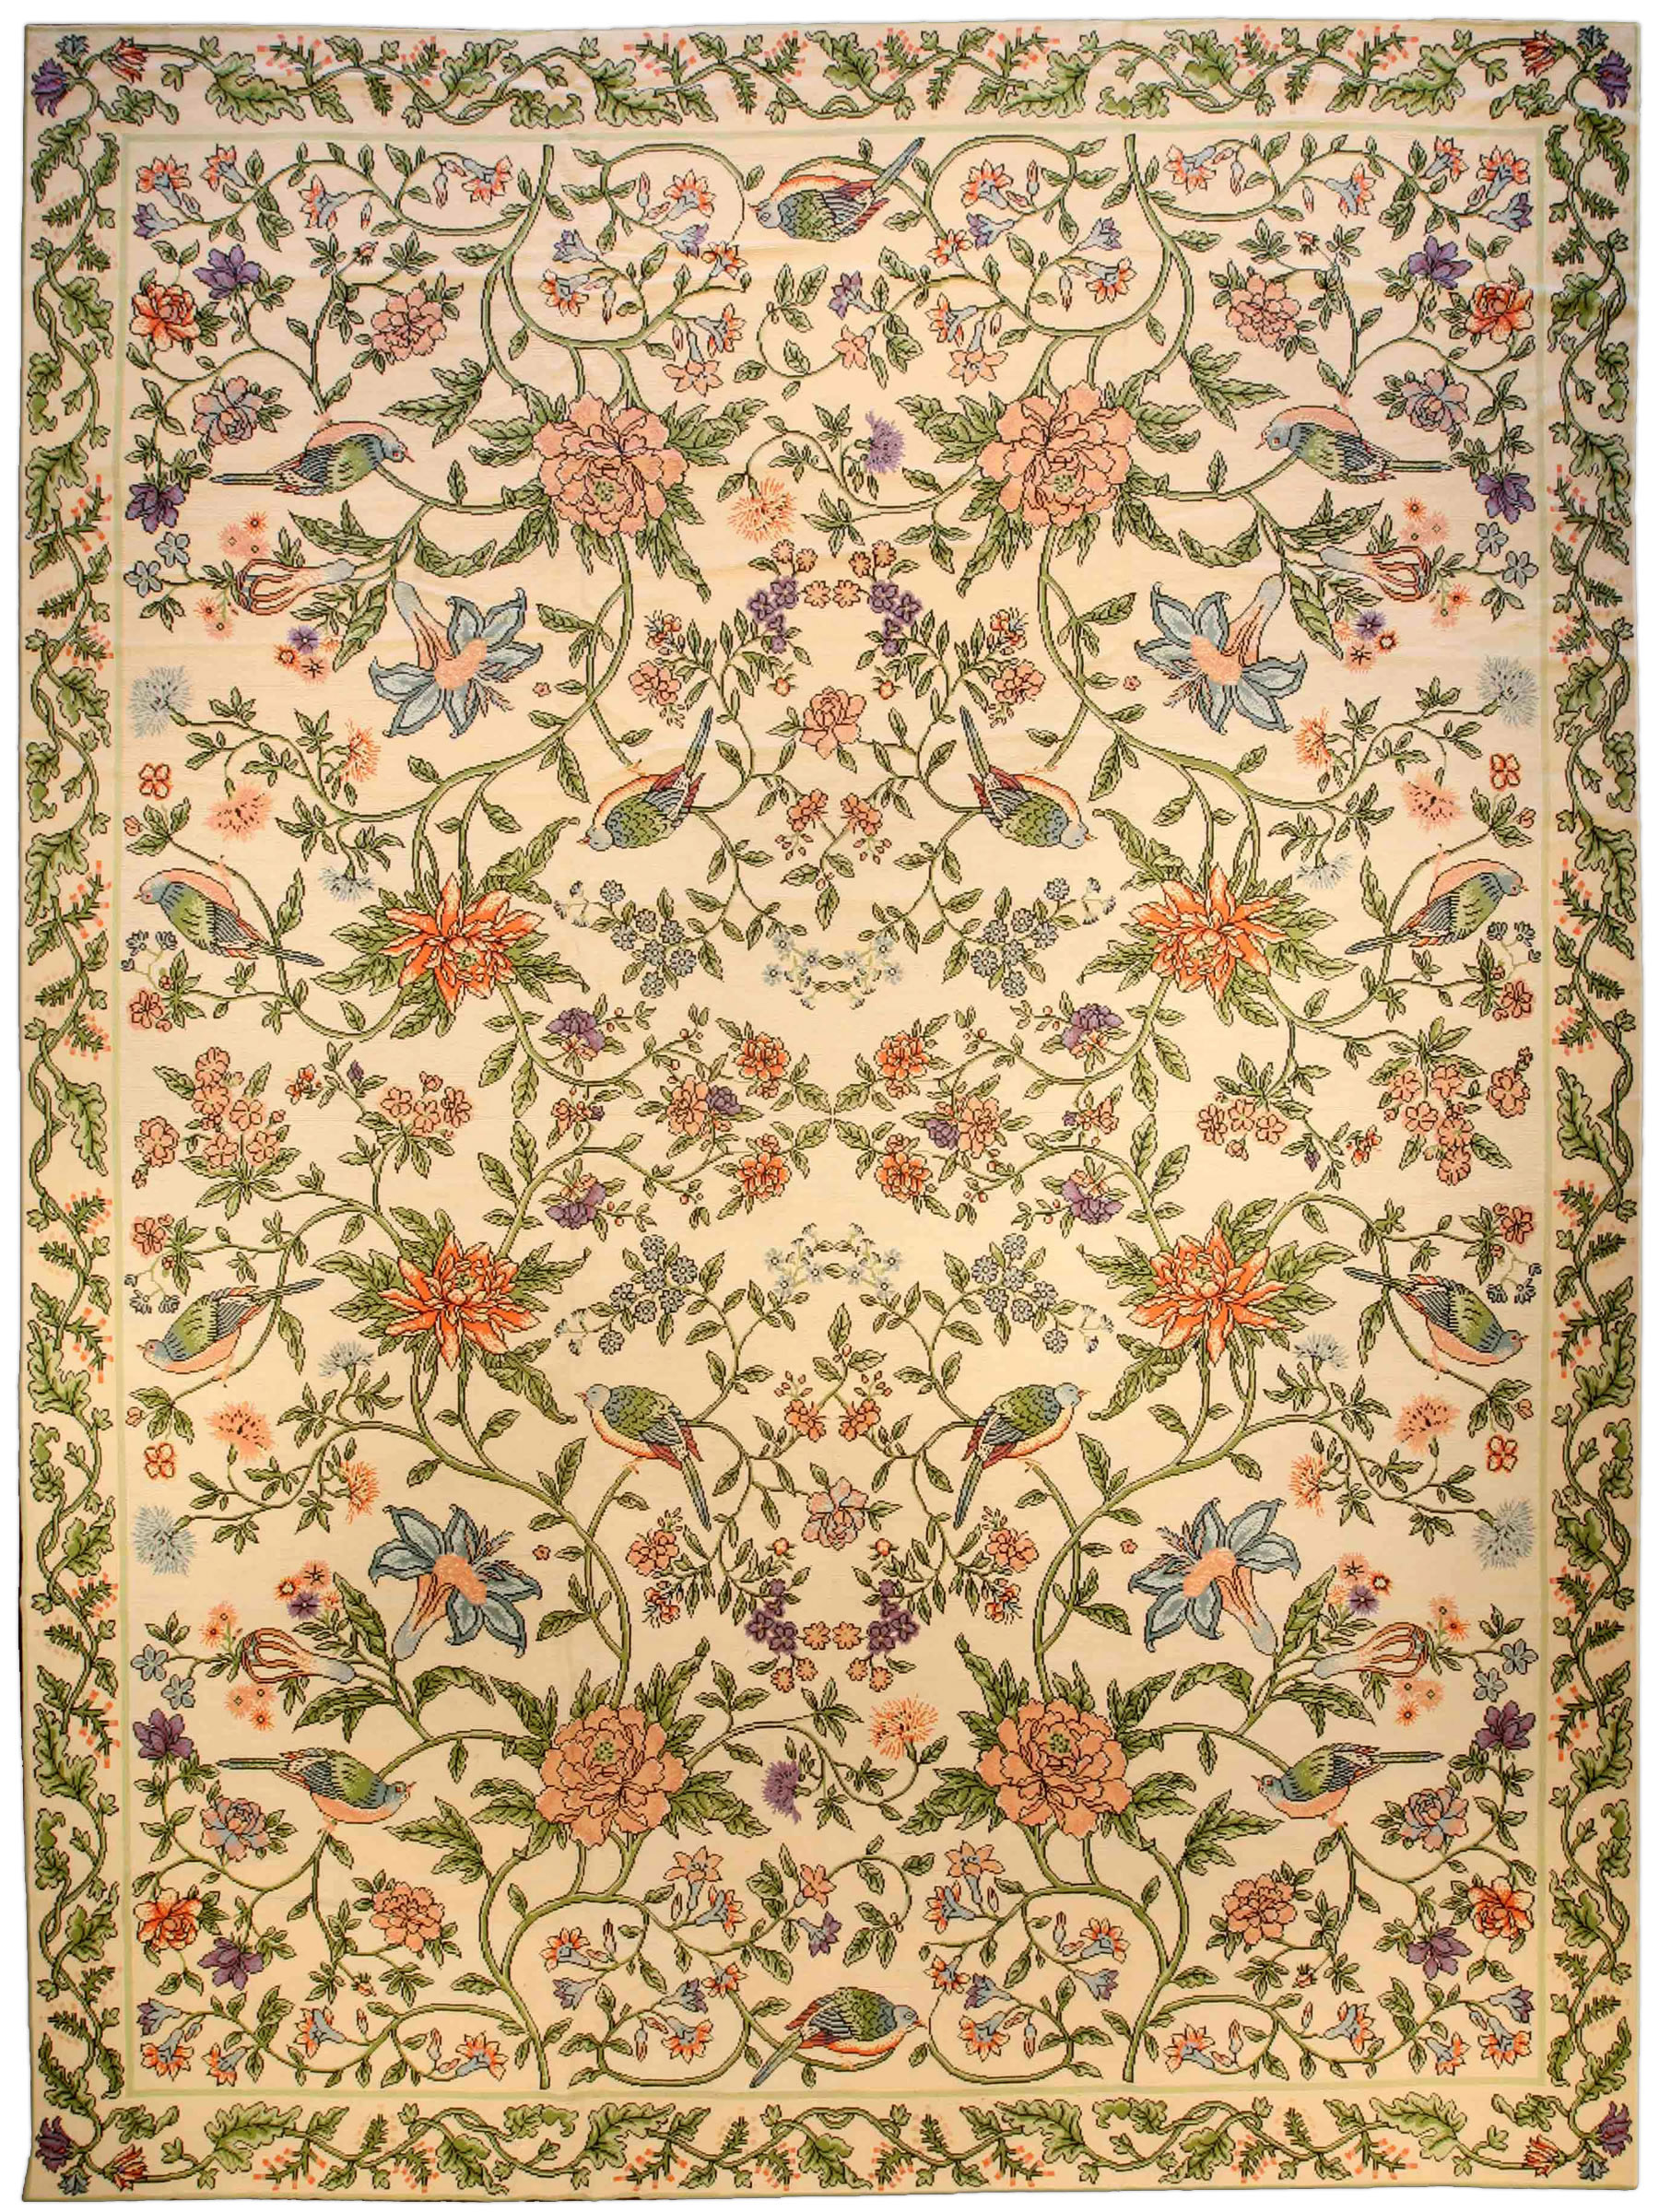 Needlepoint Needlework Rugs Amp Carpets For Sale Antique